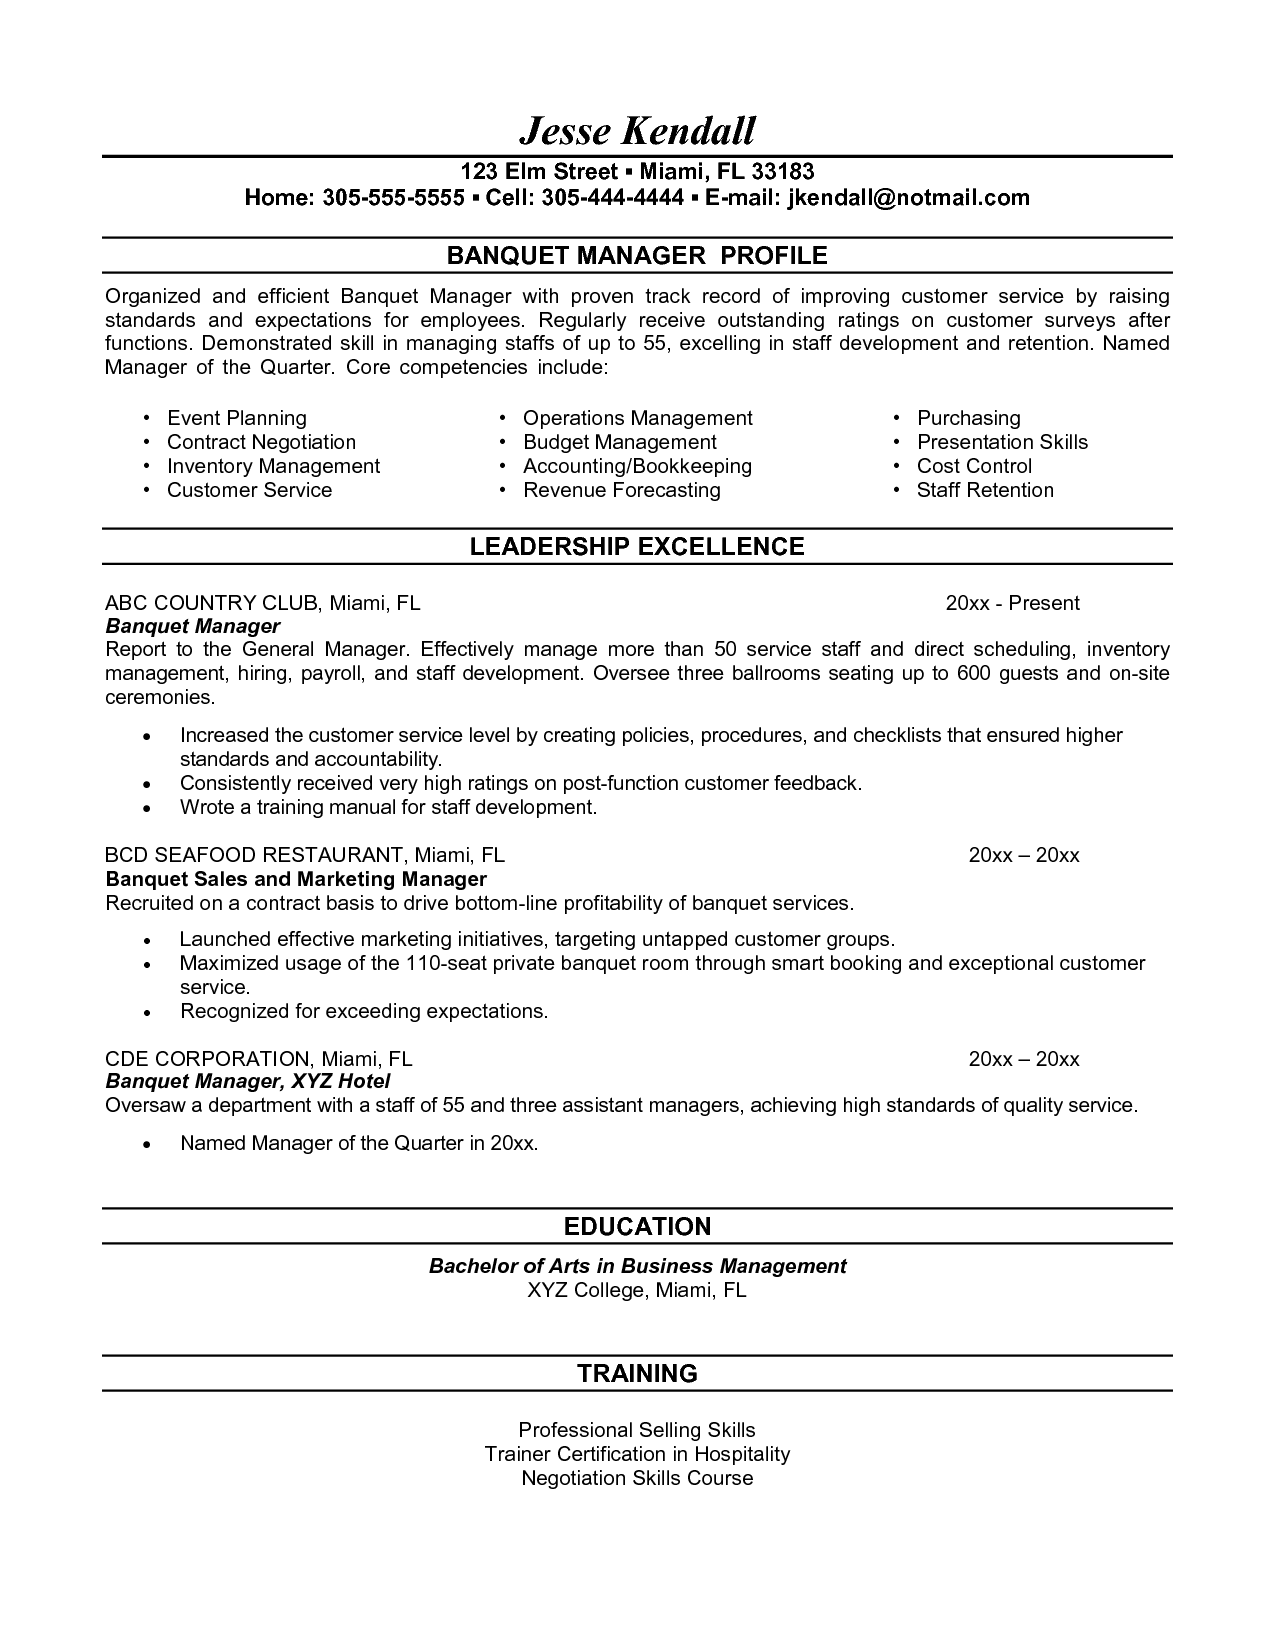 Special Education Teacher Resume | school | Pinterest | Special ...